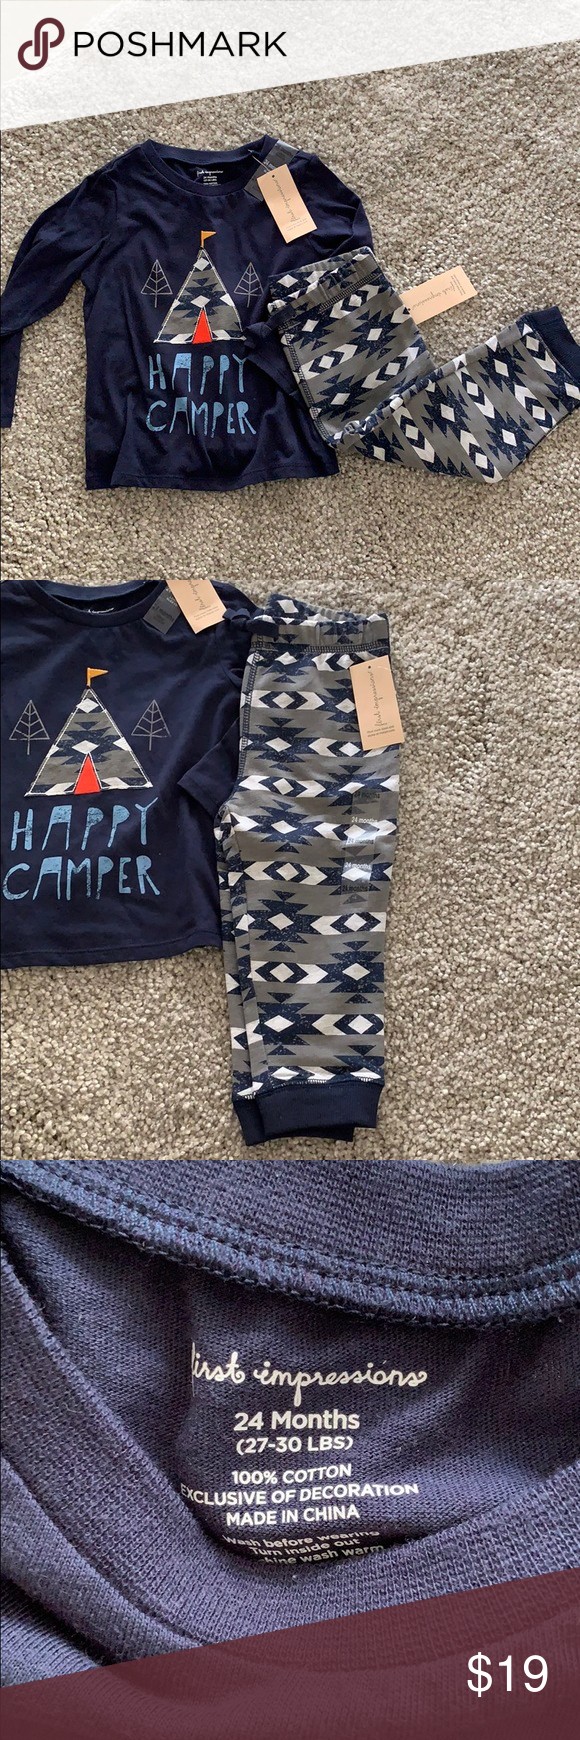 d1f57a7b2 First Impressions - Happy Camper tee and joggers Super cute brand new  little boys matching tee with printed joggers First Impressions Matching  Sets